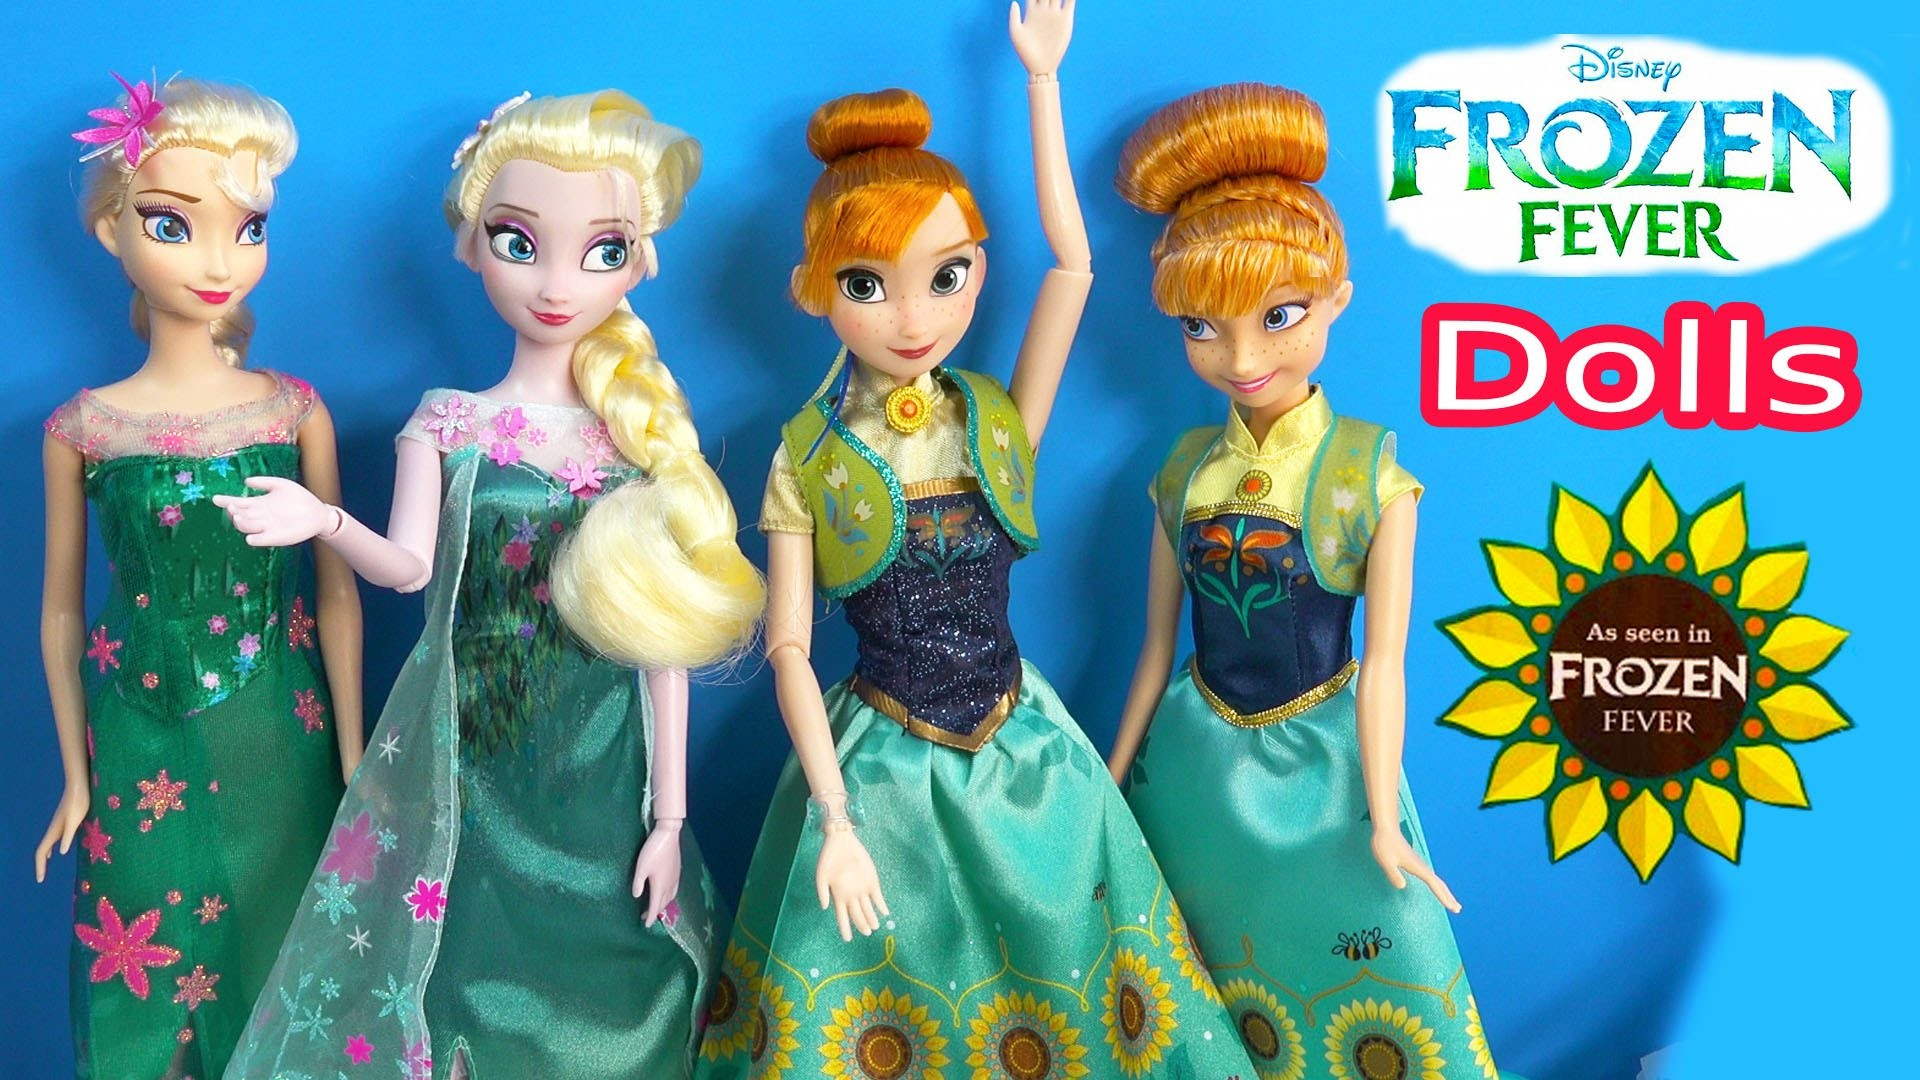 1920x1080 Queen Elsa FROZEN FEVER Princess Anna Disney Store Birthday Party Film  Movie 2 Dolls Unboxing Review - YouTube